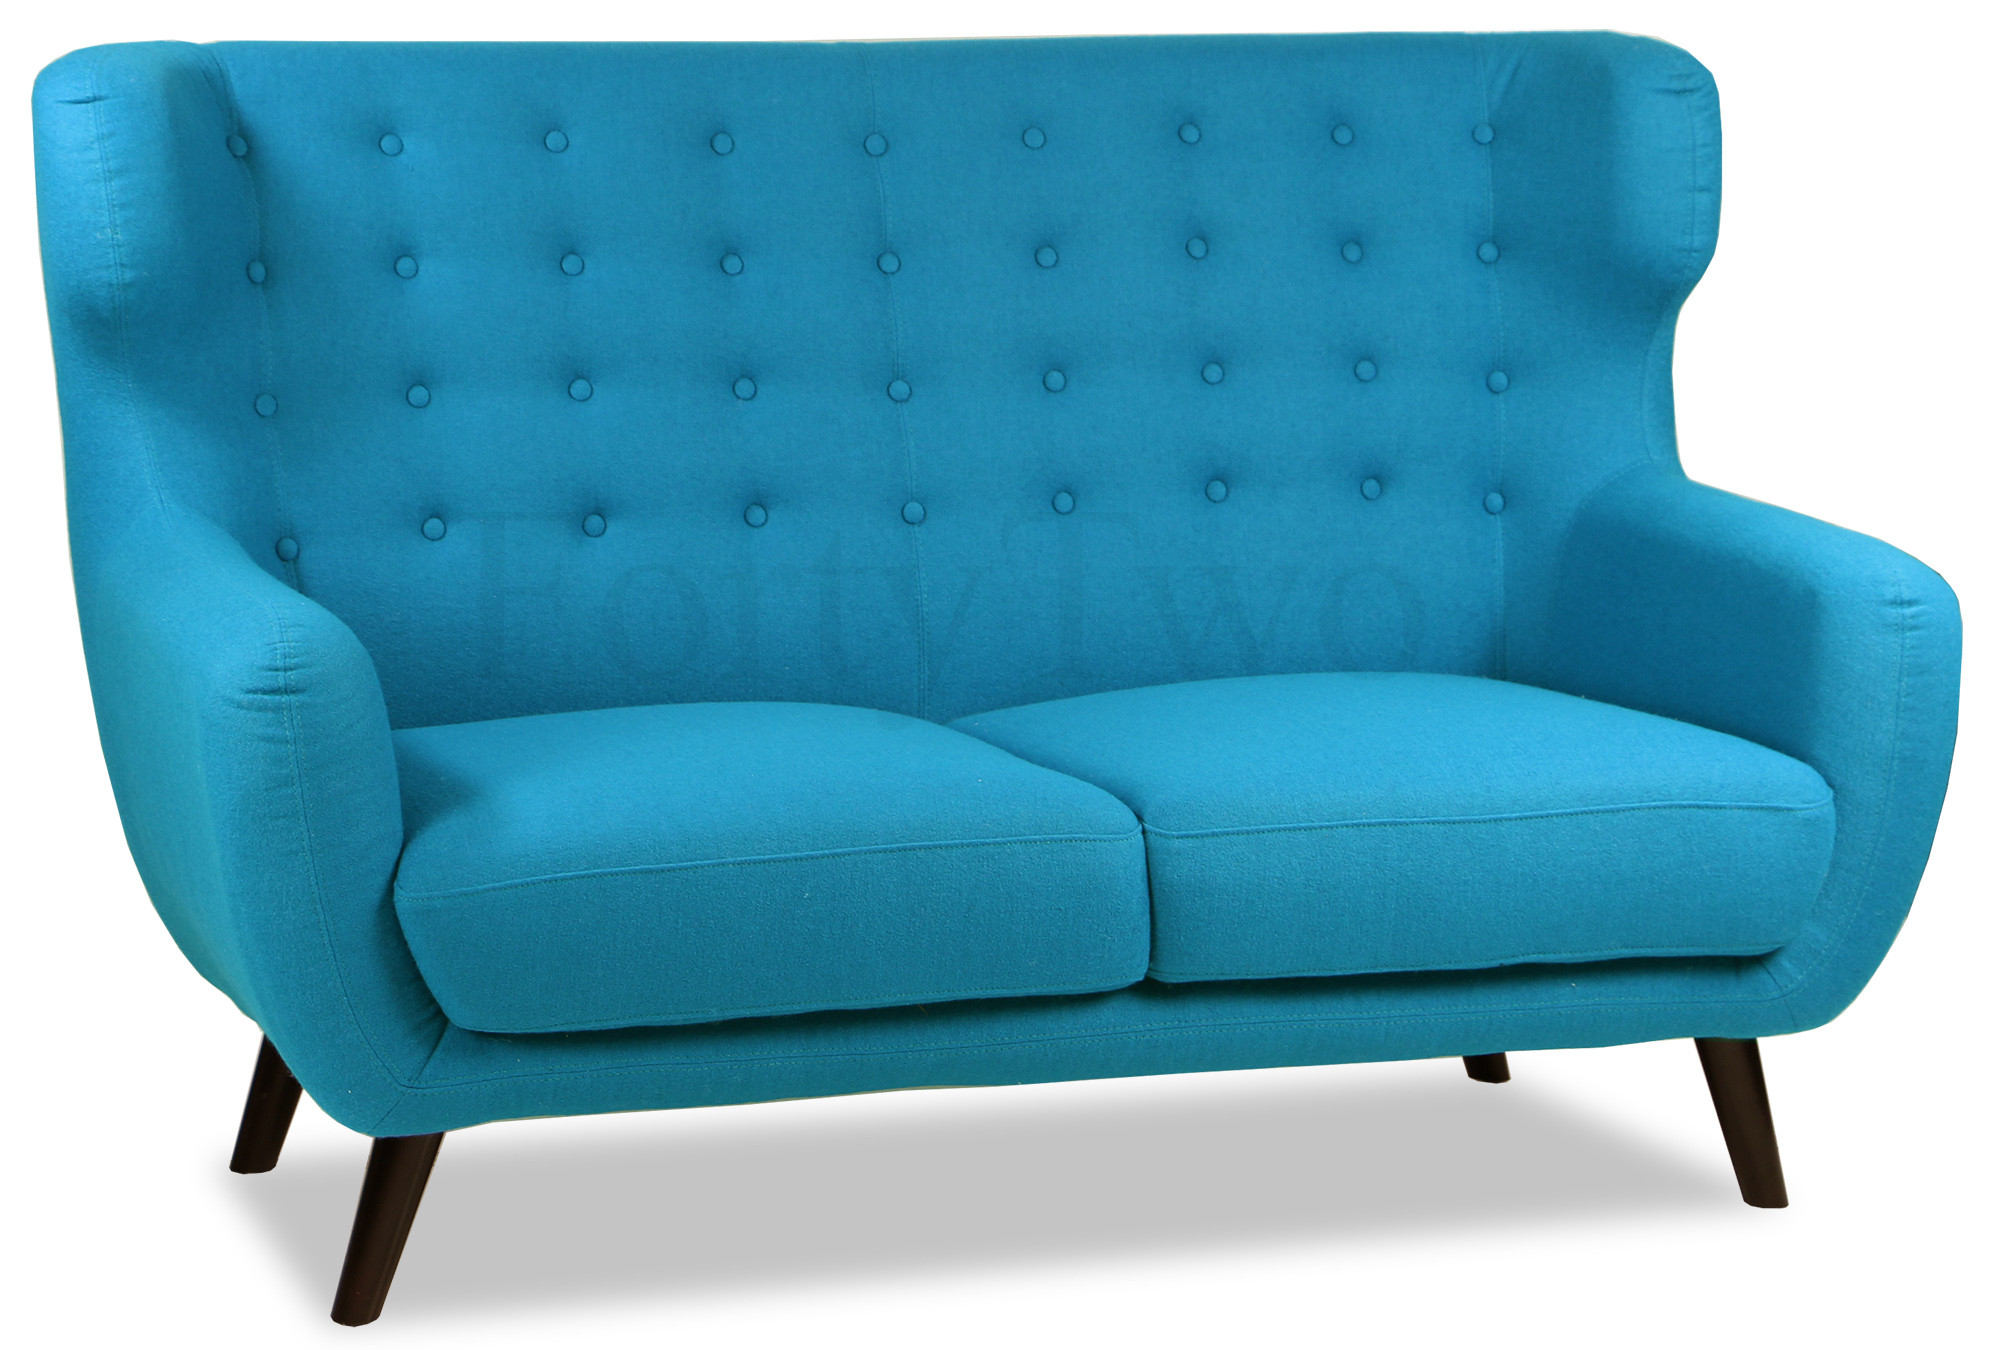 Replica wingback designer 2 seater sofa aqua furniture for Designer sofa replica